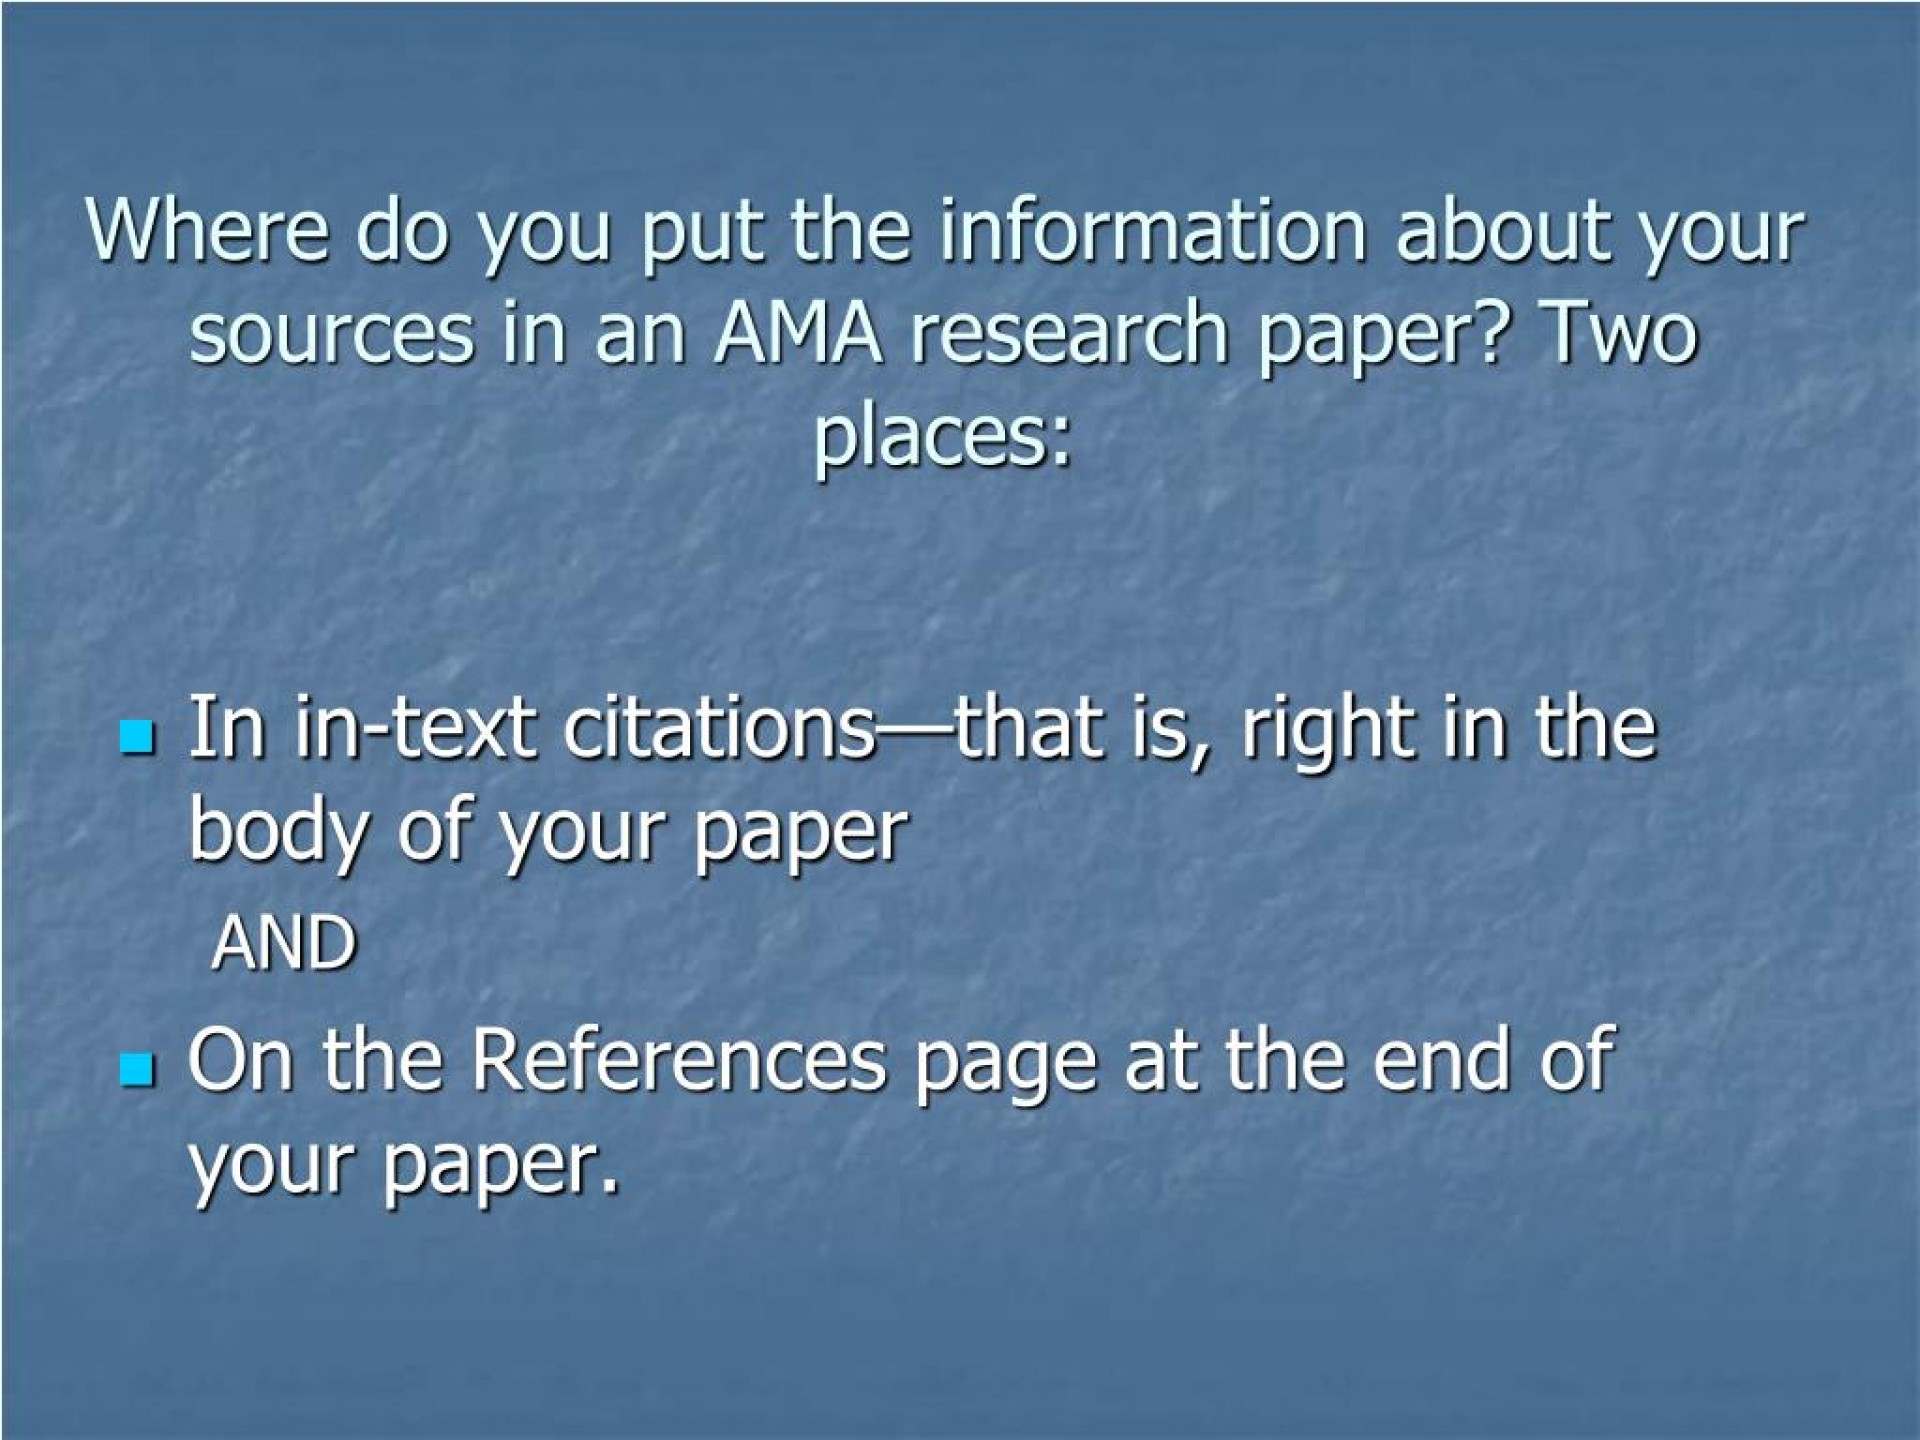 004 Where Do You Put The Information About Your Sources In An Ama Research Paper Two Places L Can I Write One Fascinating A Day 6 Page How To Good 1920